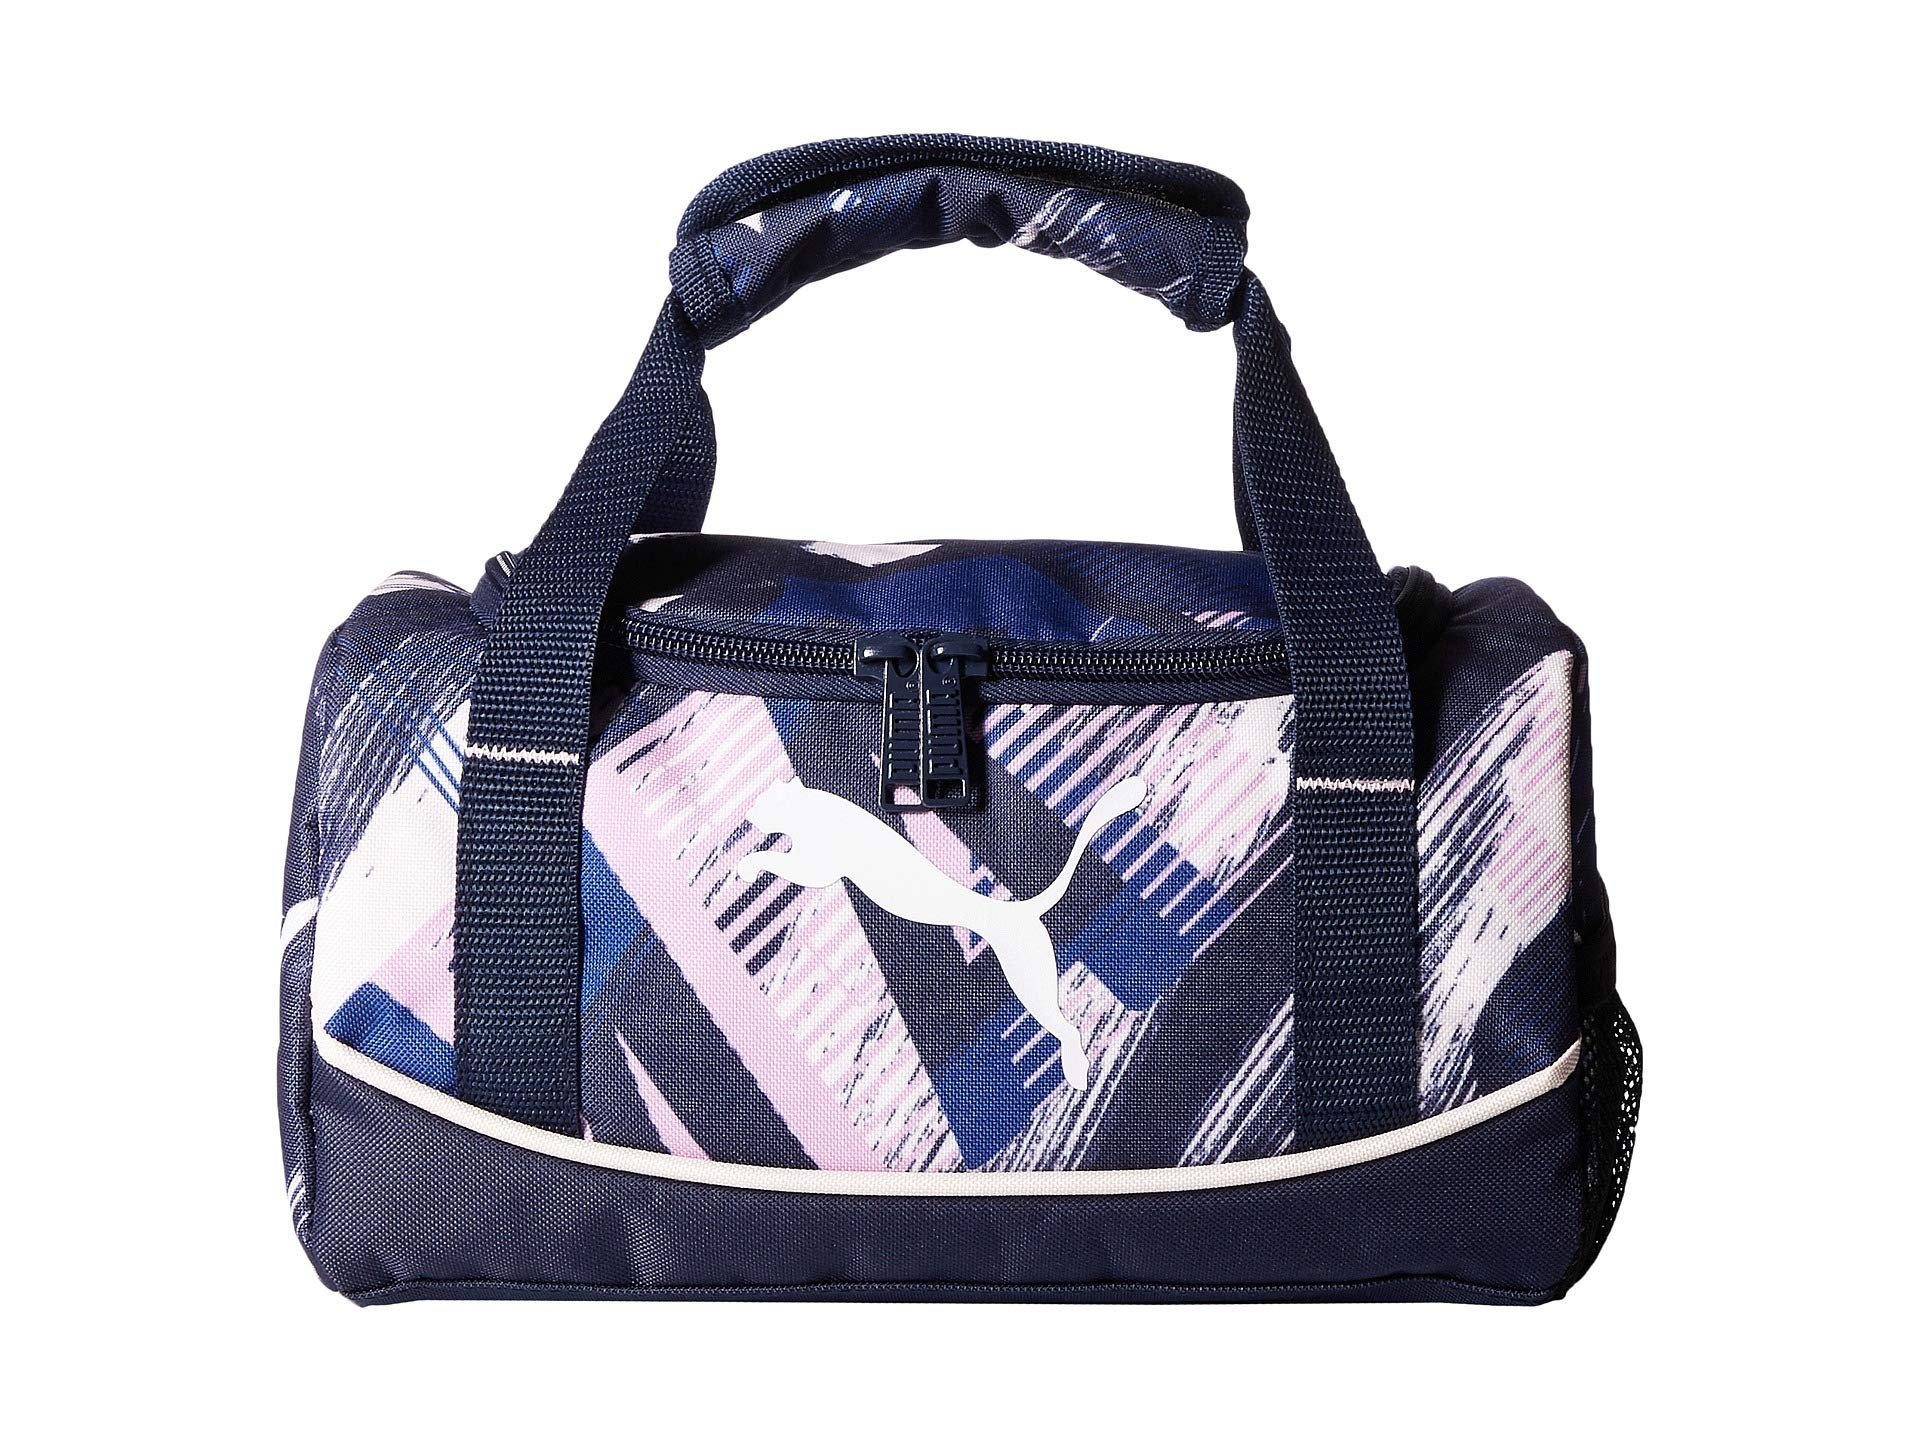 Bolso Accesorio de Viaje para Hombre PUMA Evercat Mini Duffel Lunch Box (Little Kids/Big Kids)  + PUMA en VeoyCompro.net